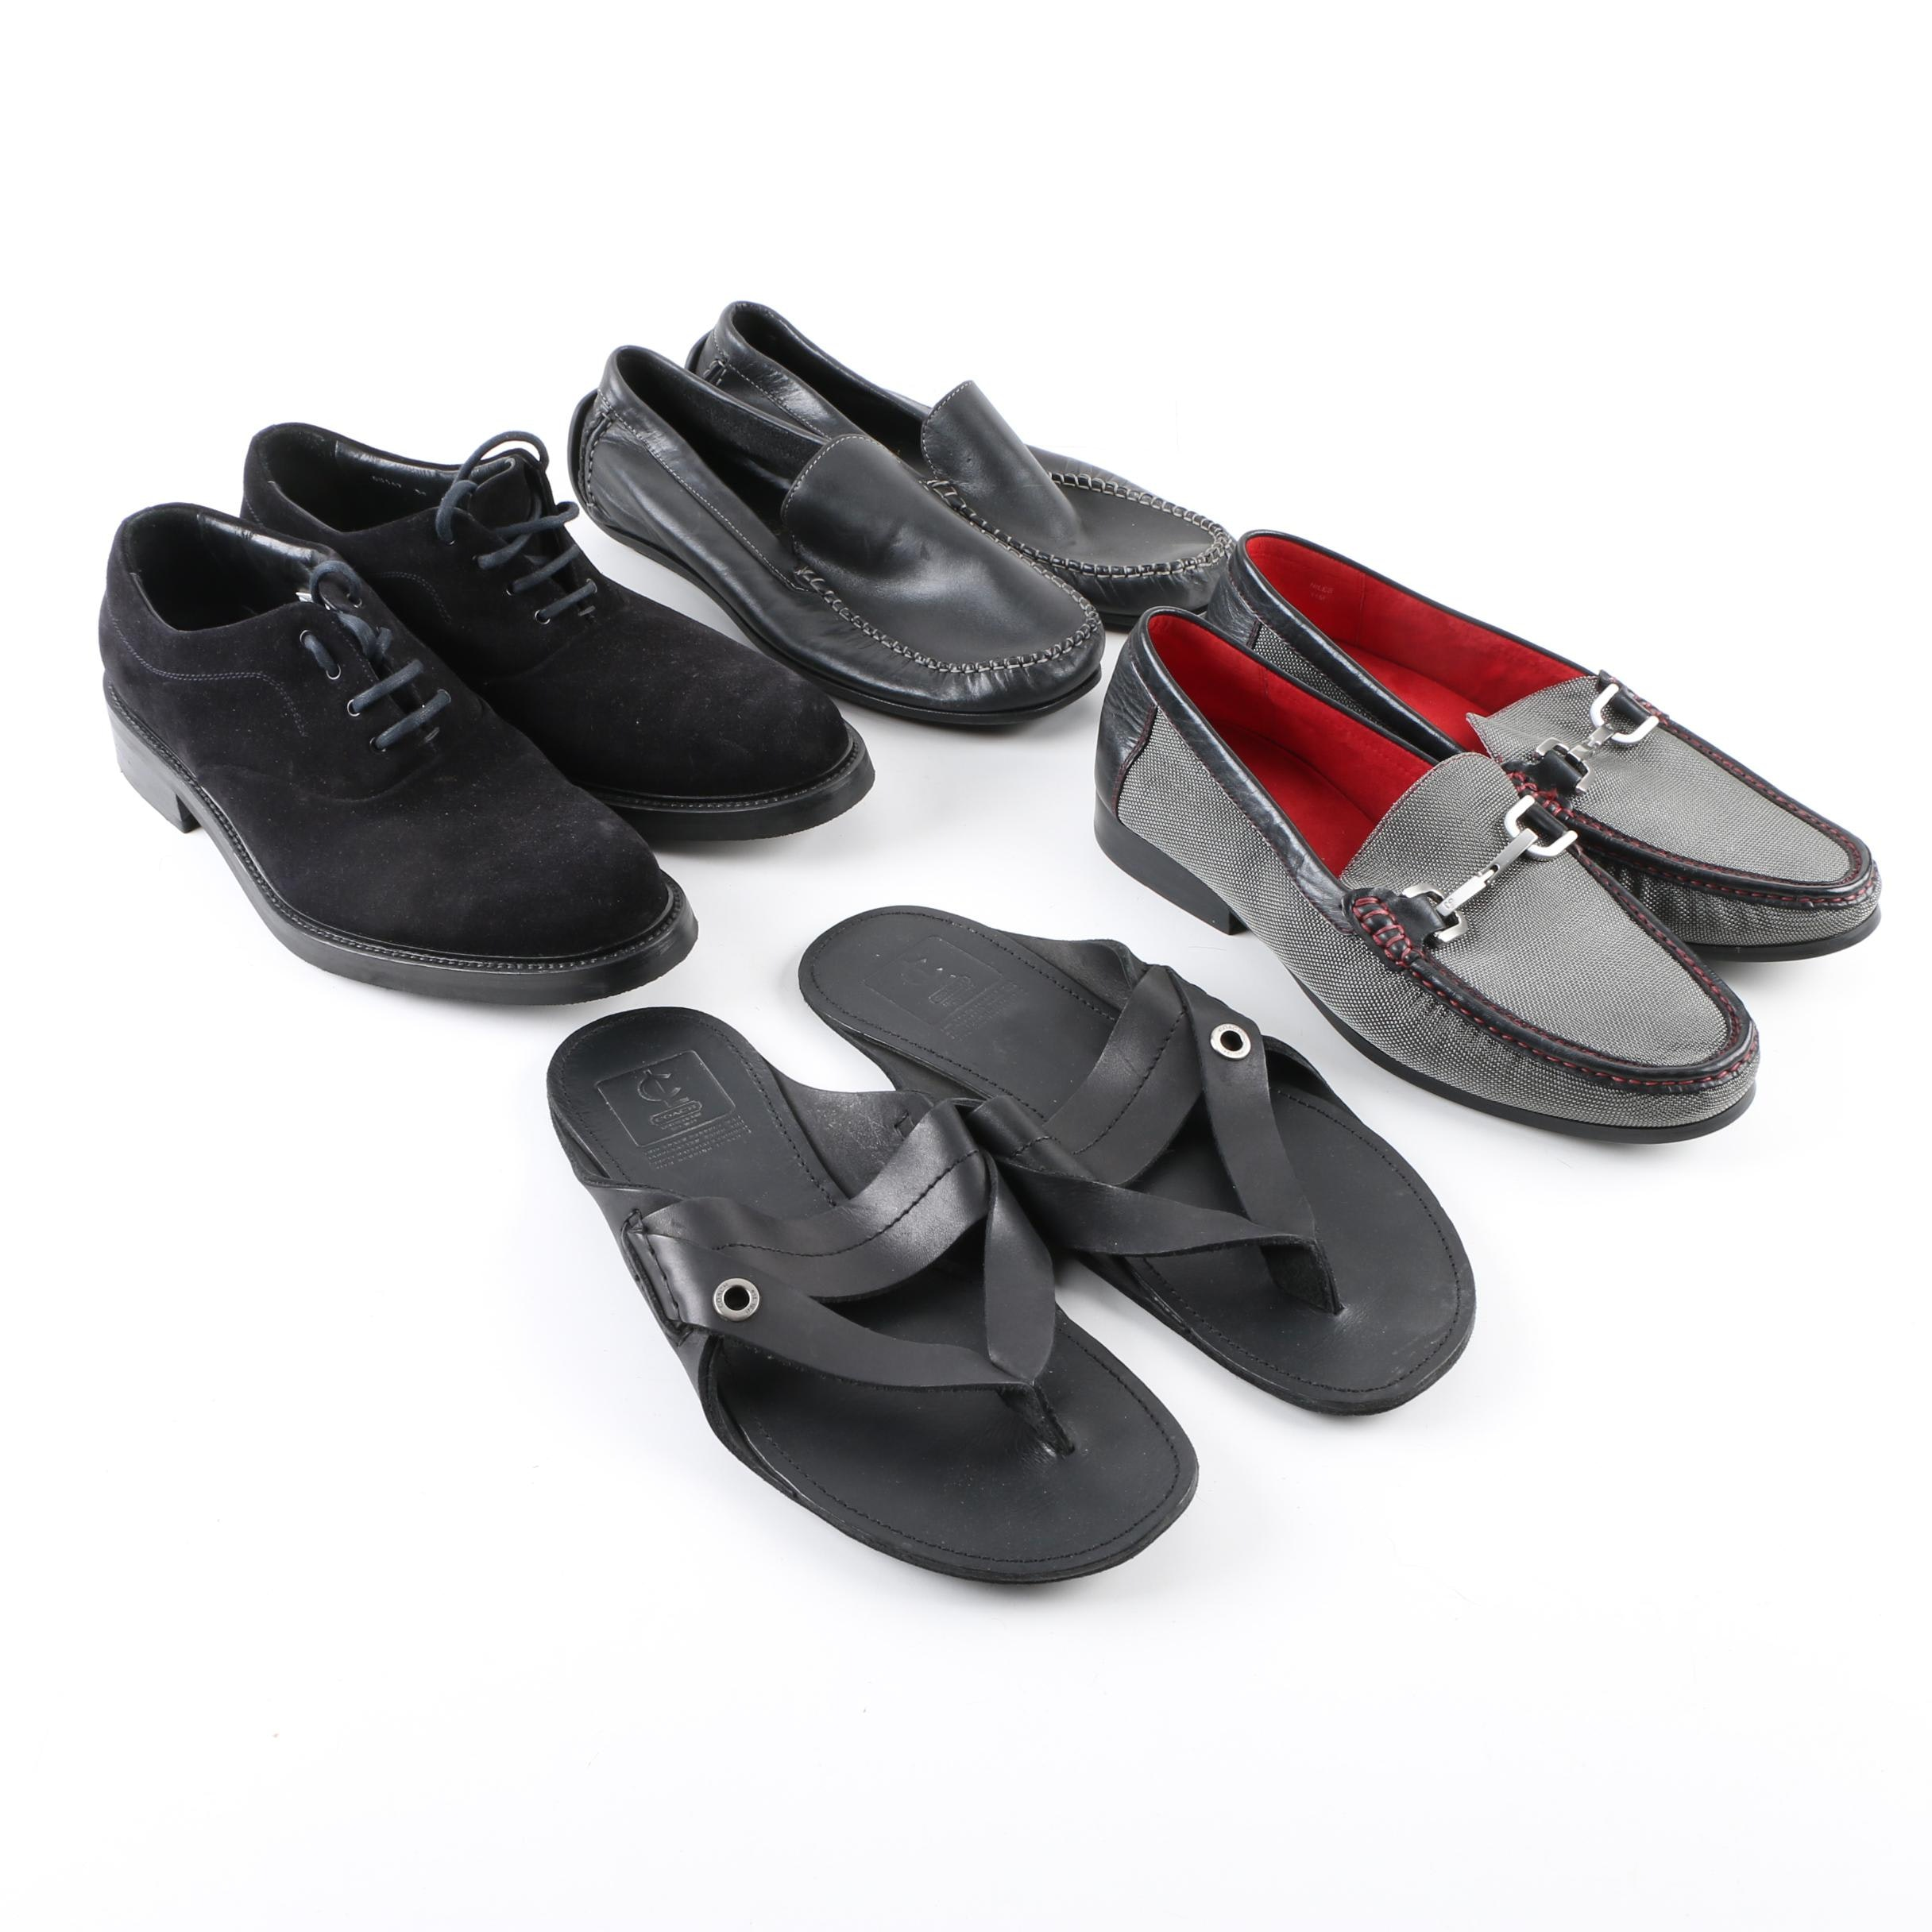 Men's Shoes and Sandals Including Coach, Donald J. Pliner and Giorgio Armani